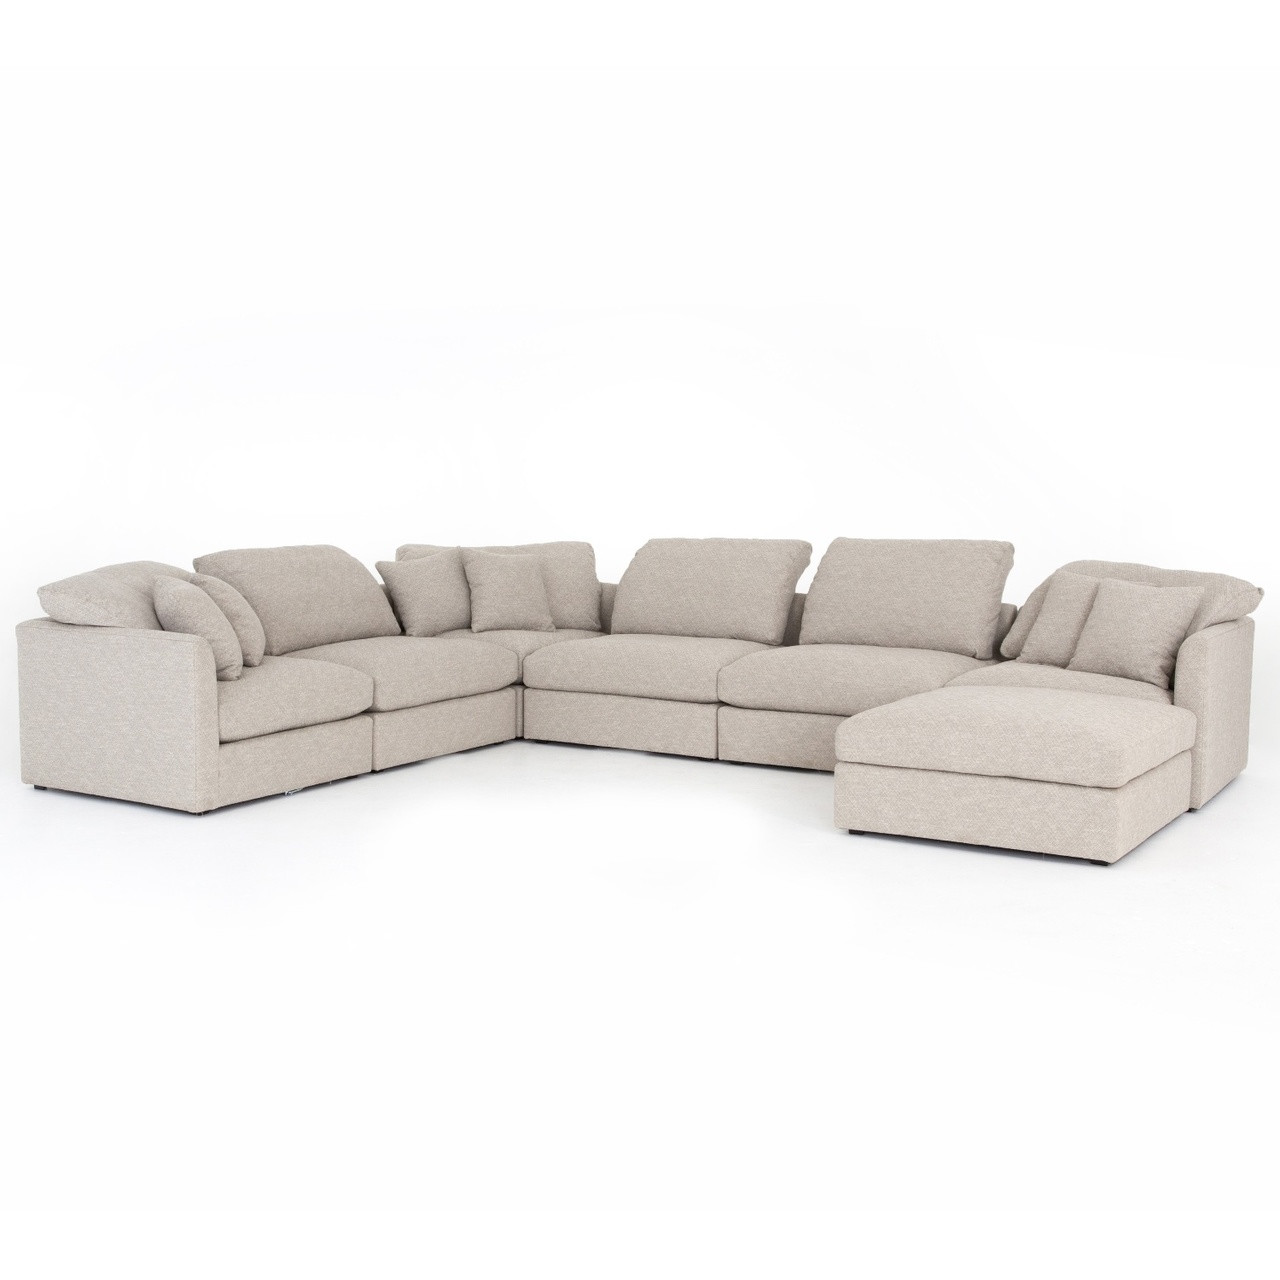 Astonishing Ingrid Natural Upholstered 7 Pc Modular U Sofa Sectional Ocoug Best Dining Table And Chair Ideas Images Ocougorg